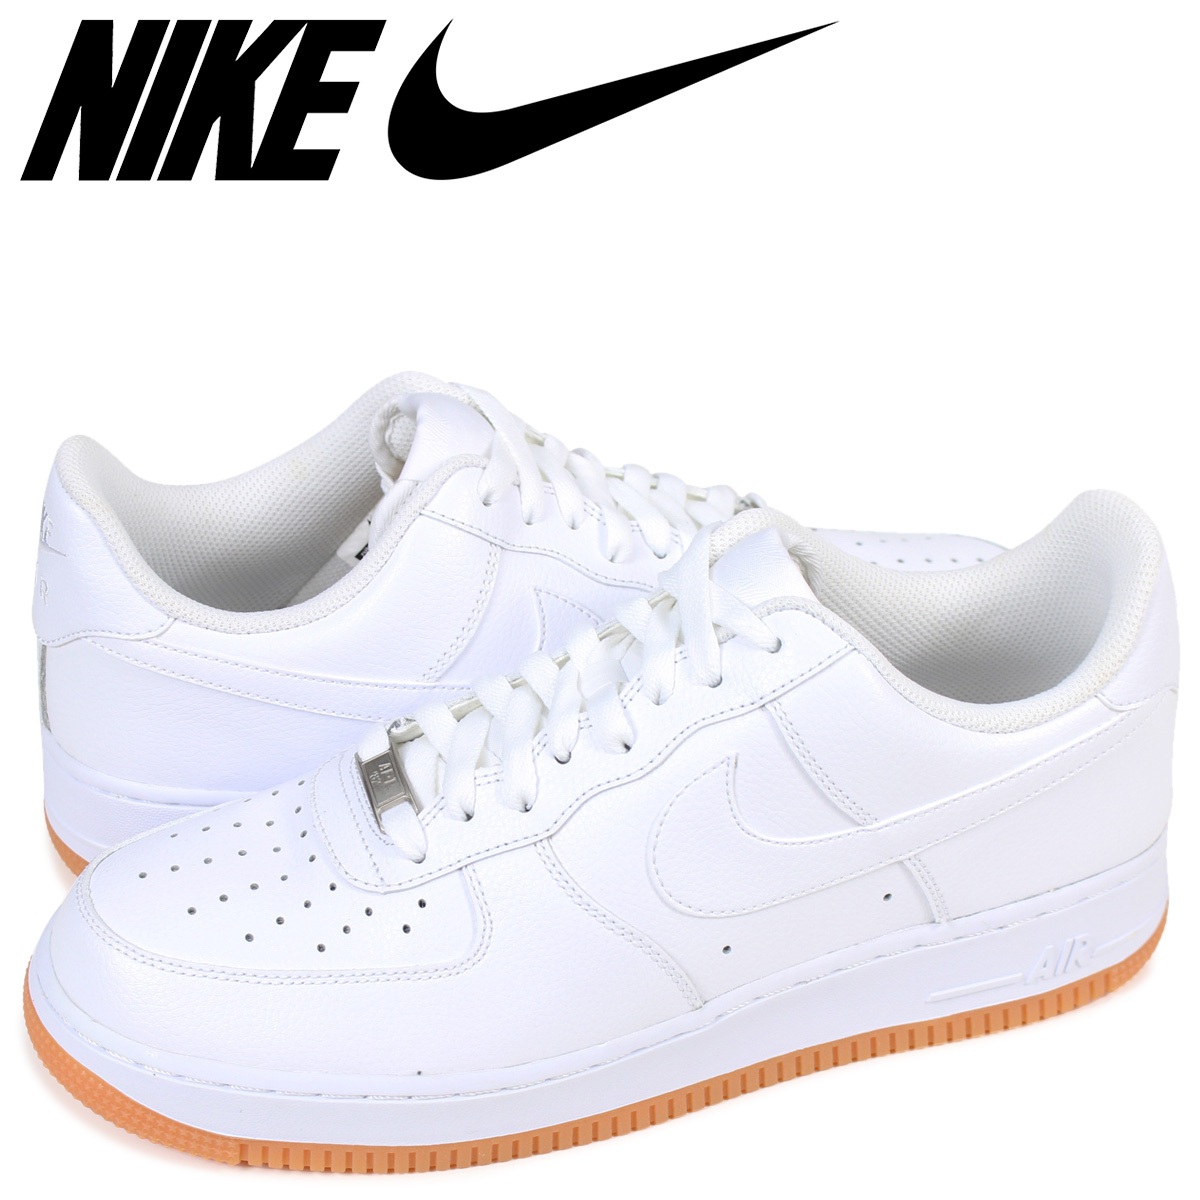 d35f8362c49 ALLSPORTS  NIKE AIR FORCE 1 LOW Nike air force 1 07 sneakers men white  488